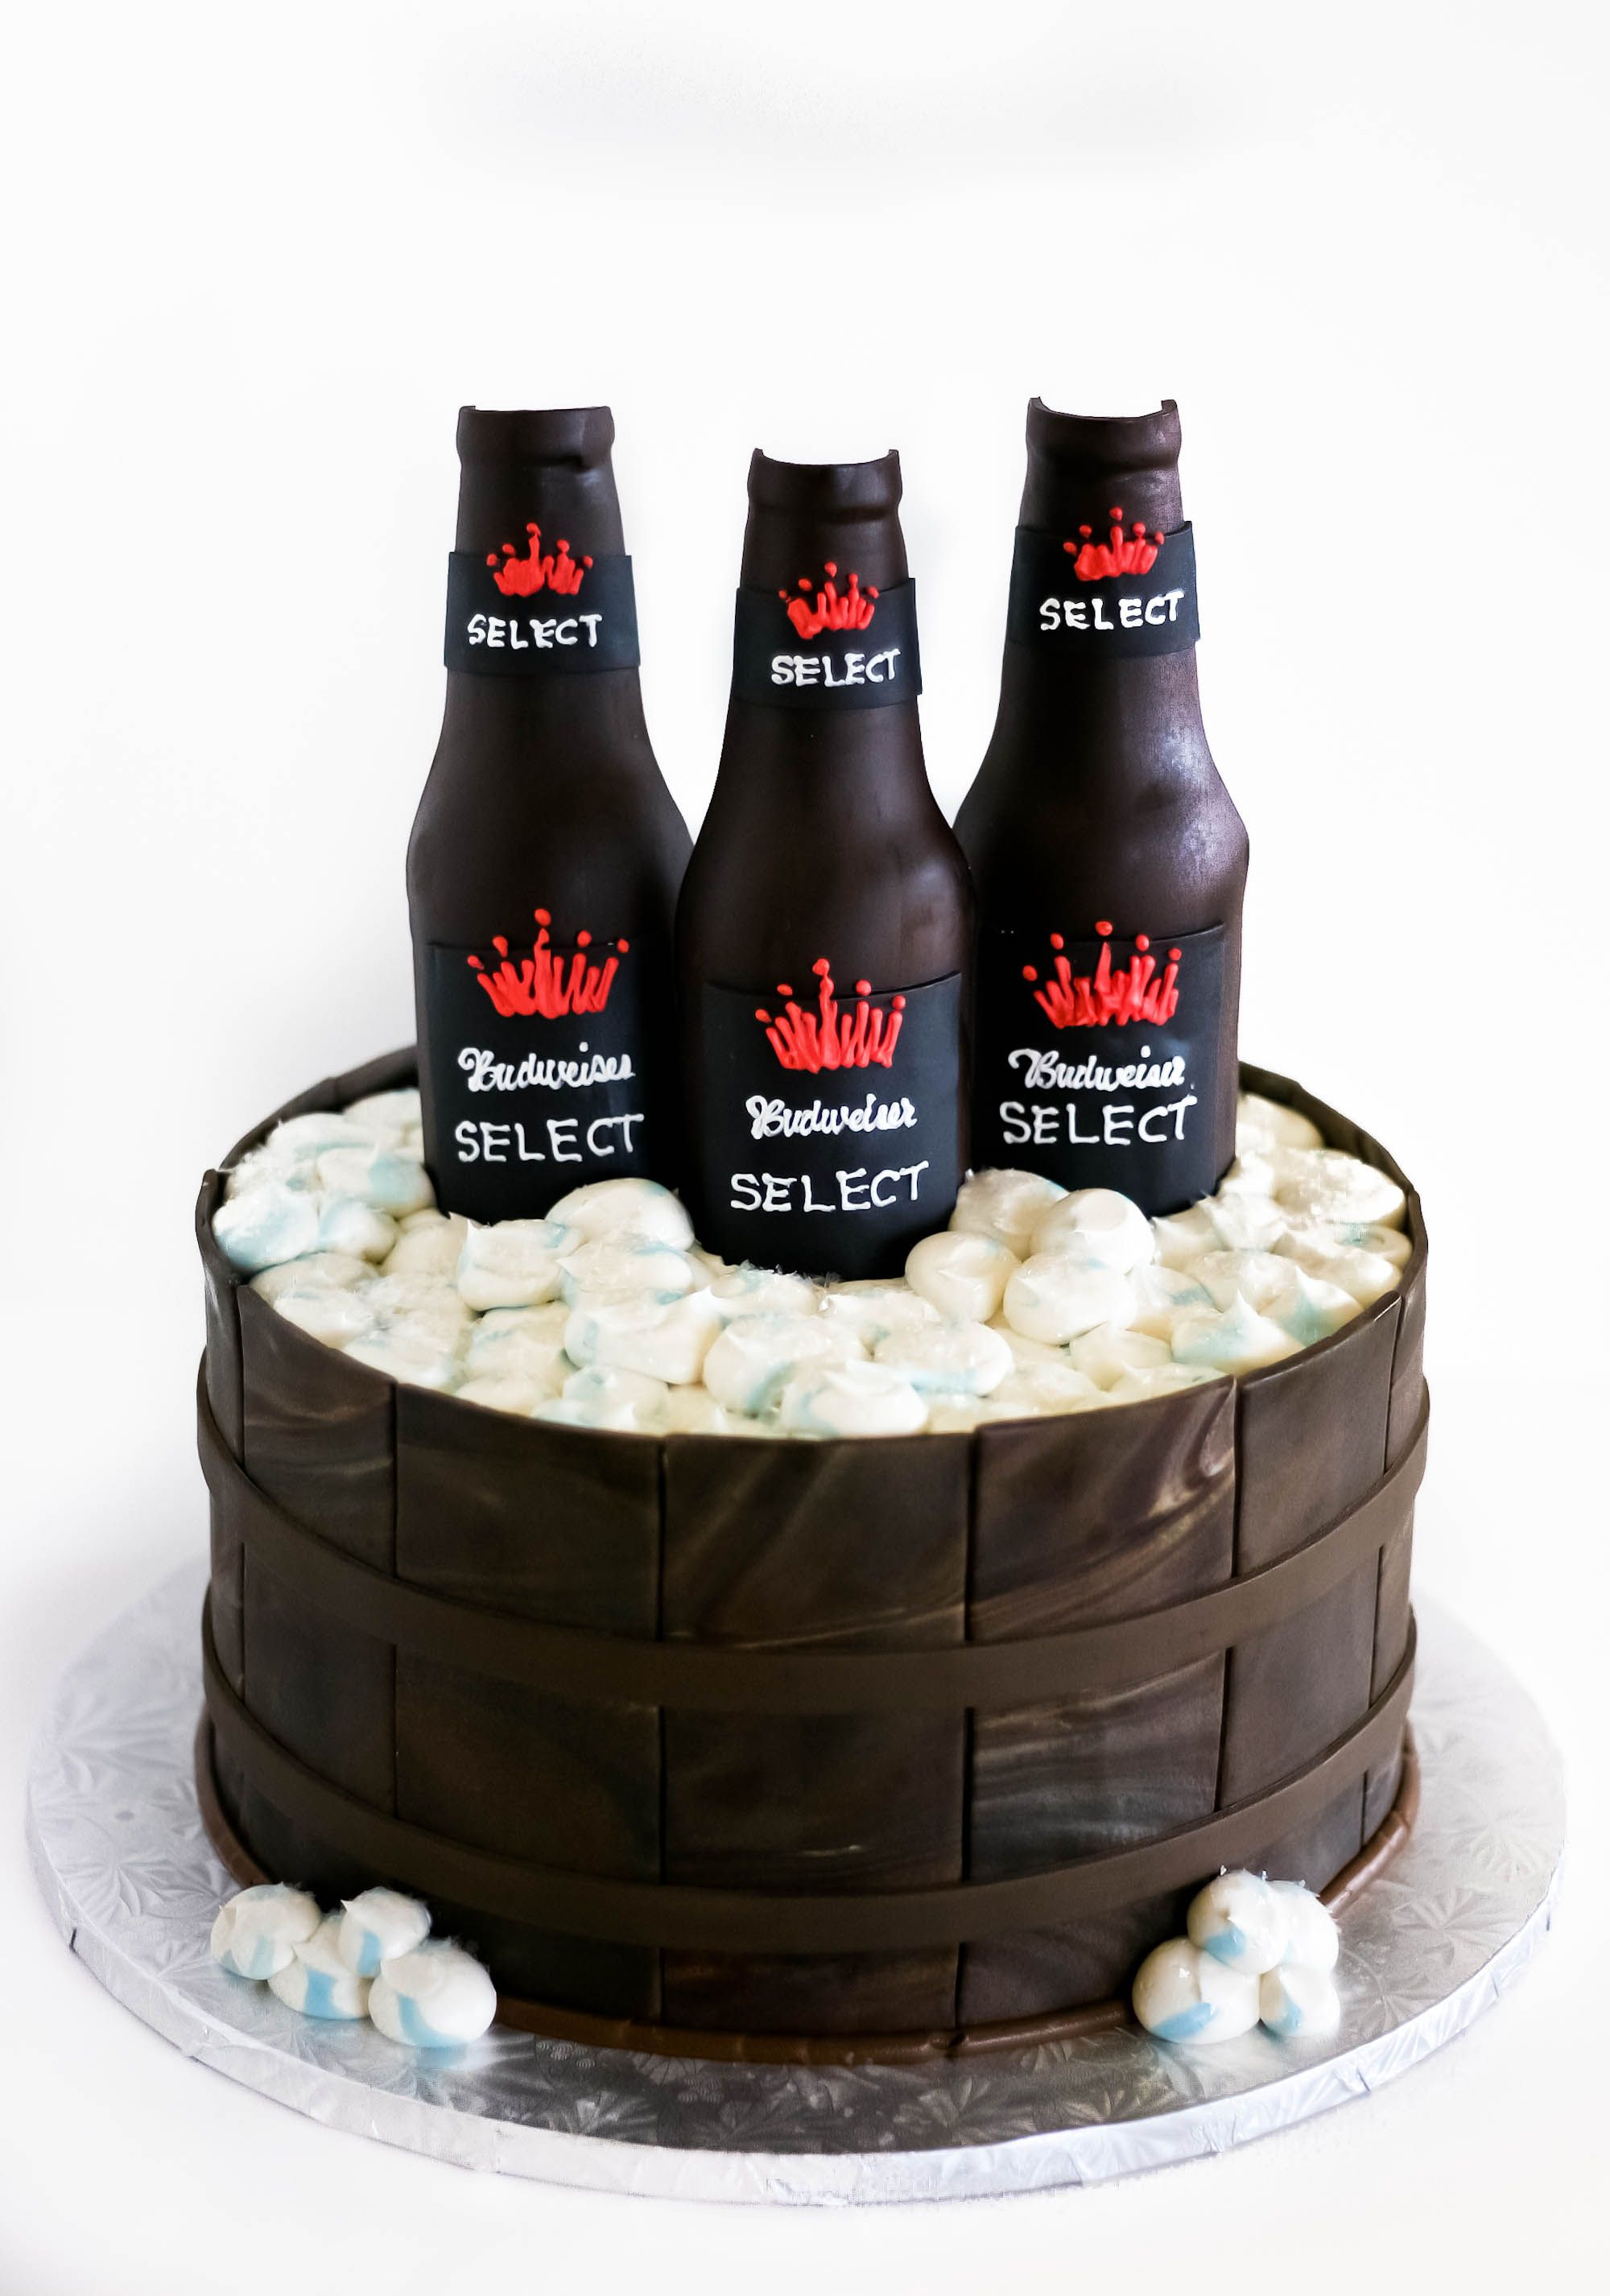 Budweiser Select Groomscake Custom Cakes From Sarah S Cake Shop In